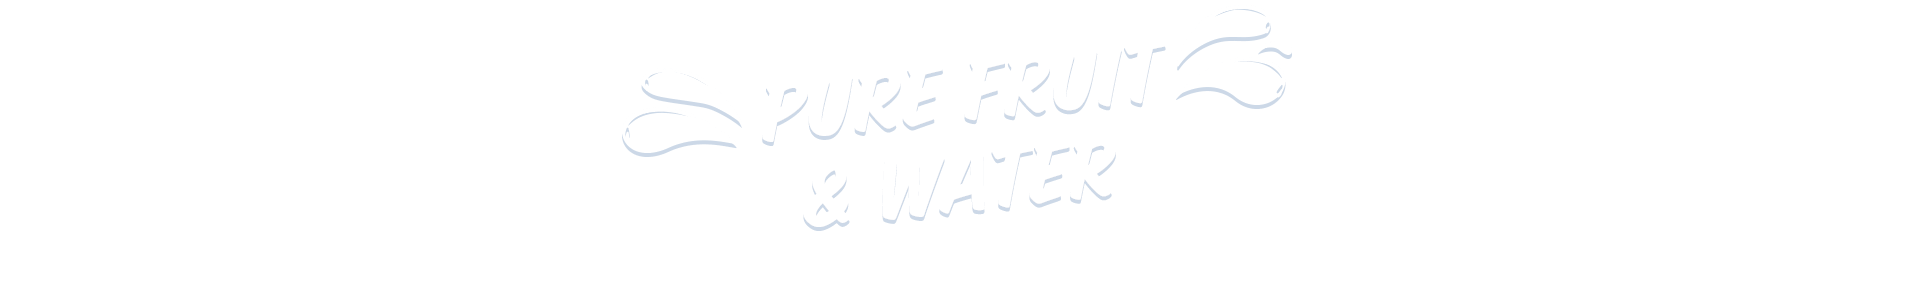 pure-fruit-and-water